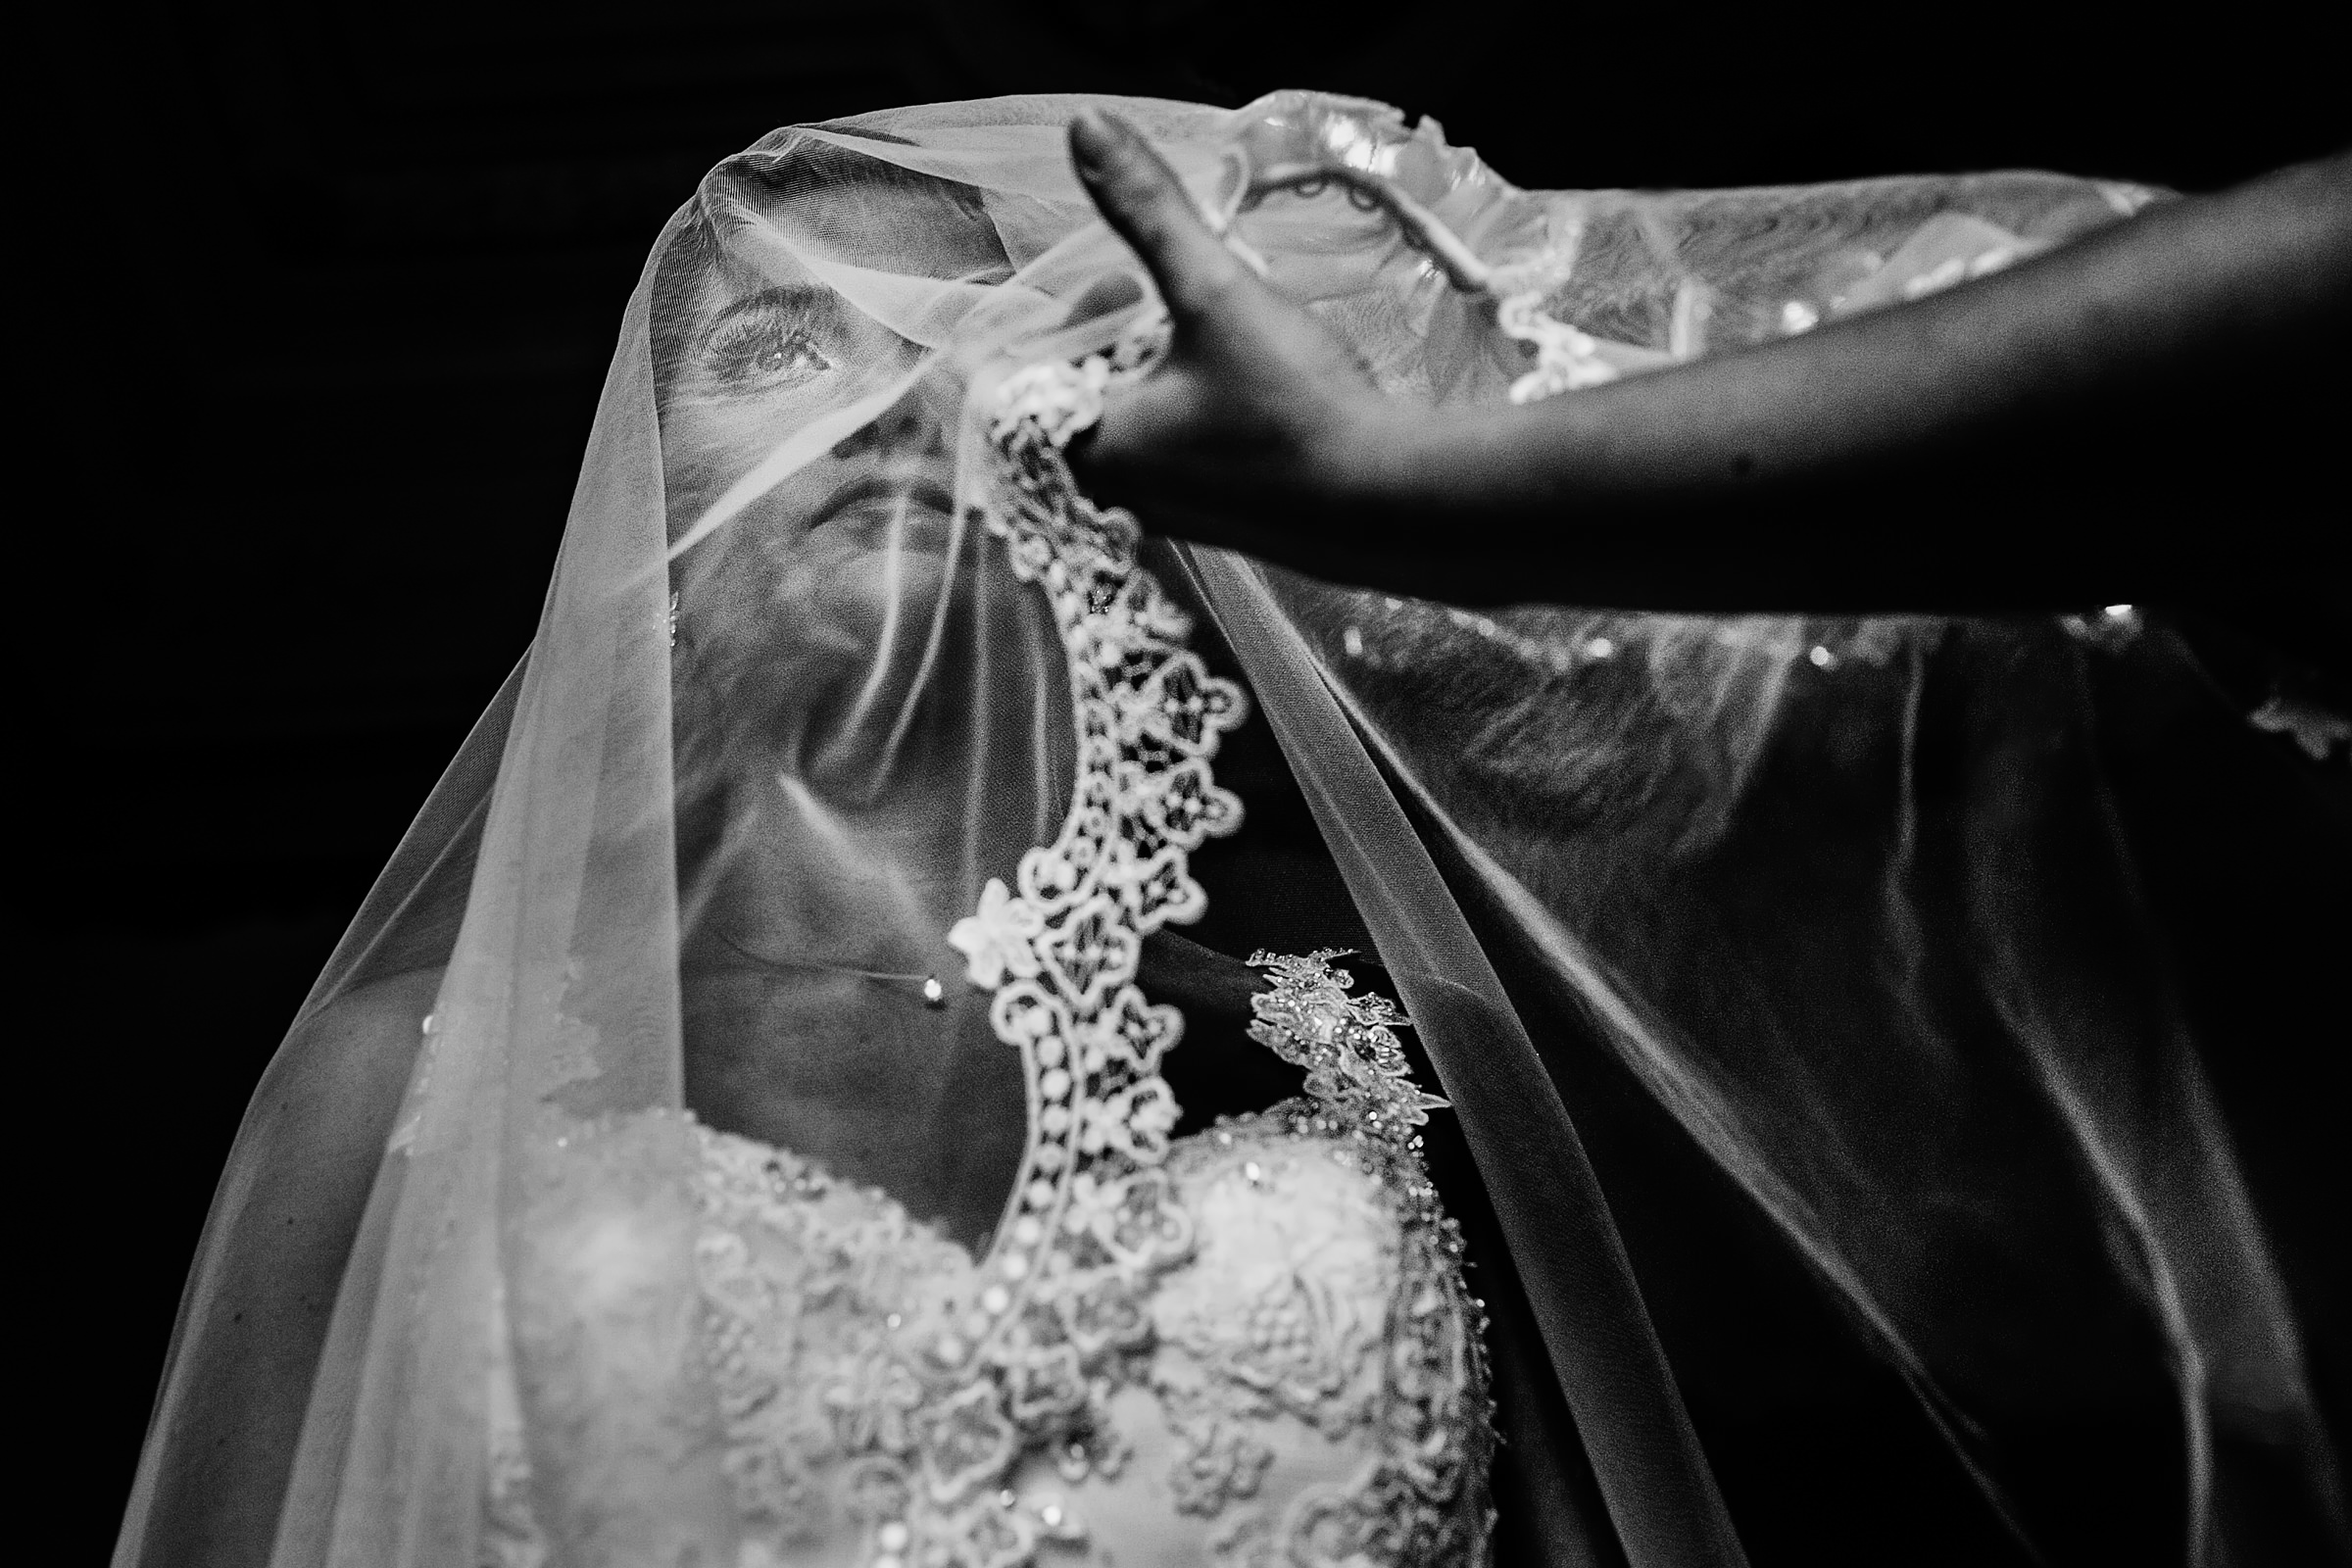 Bride being veiled - photo by D2 Photography